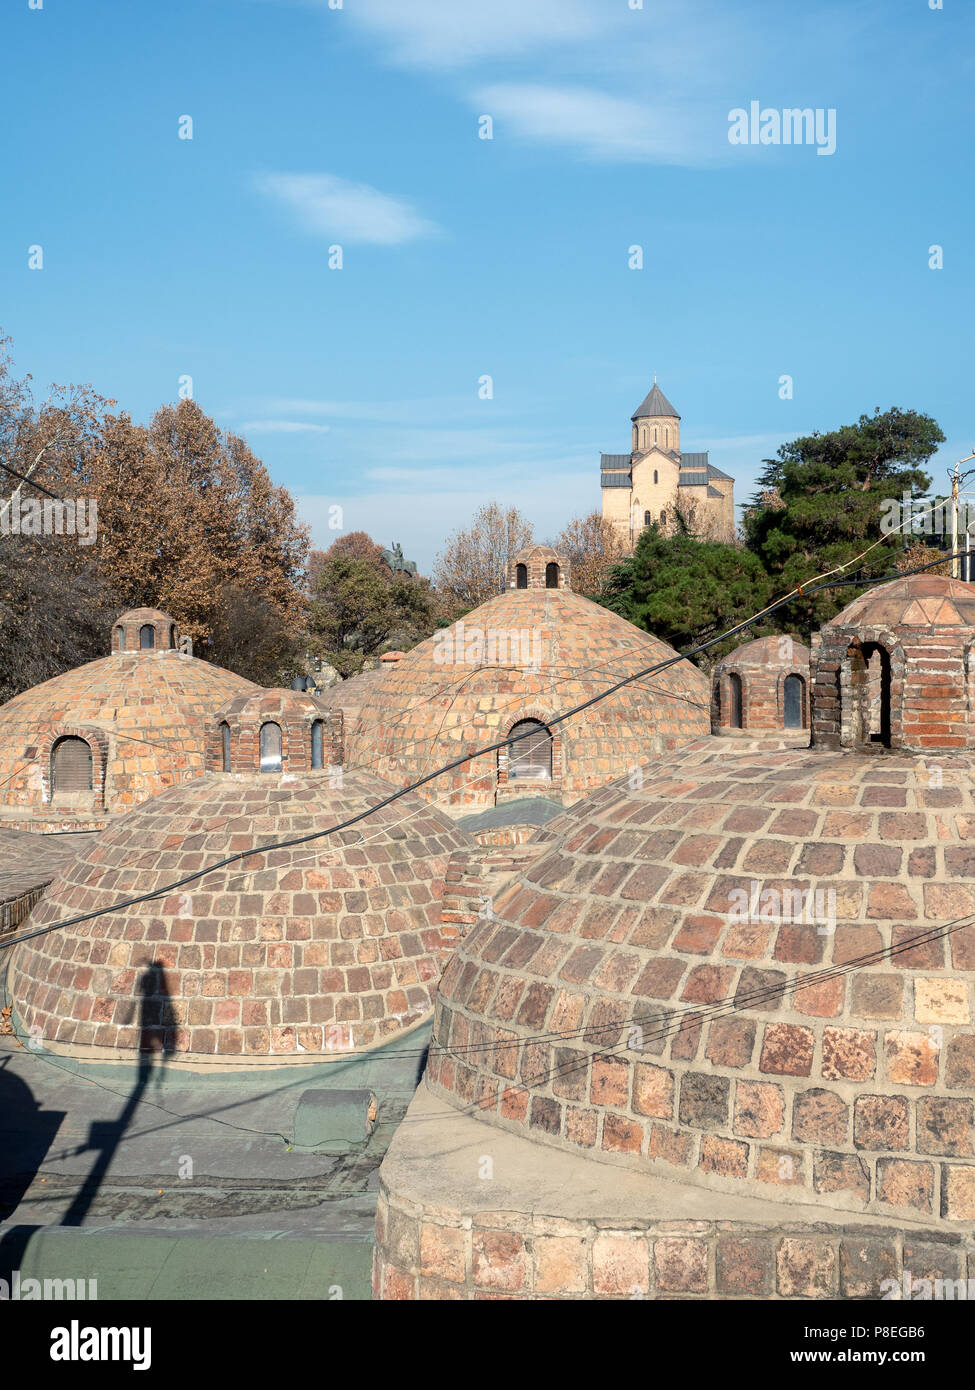 Old dome-shaped bathhouse roofs with Metekhi church in background, Abanotubani district, Tbilisi, Georgia - Stock Image